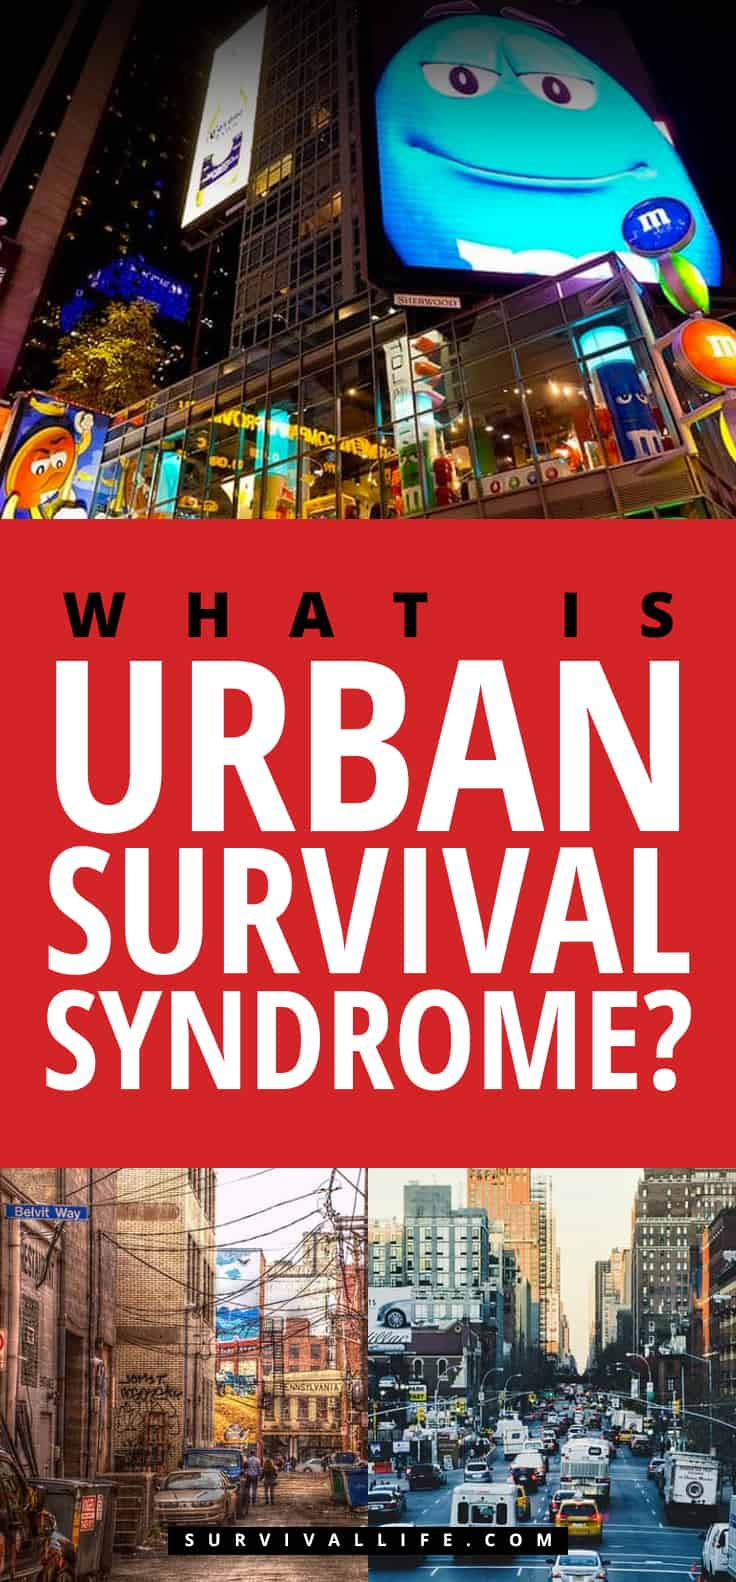 Placard | What Is Urban Survival Syndrome?